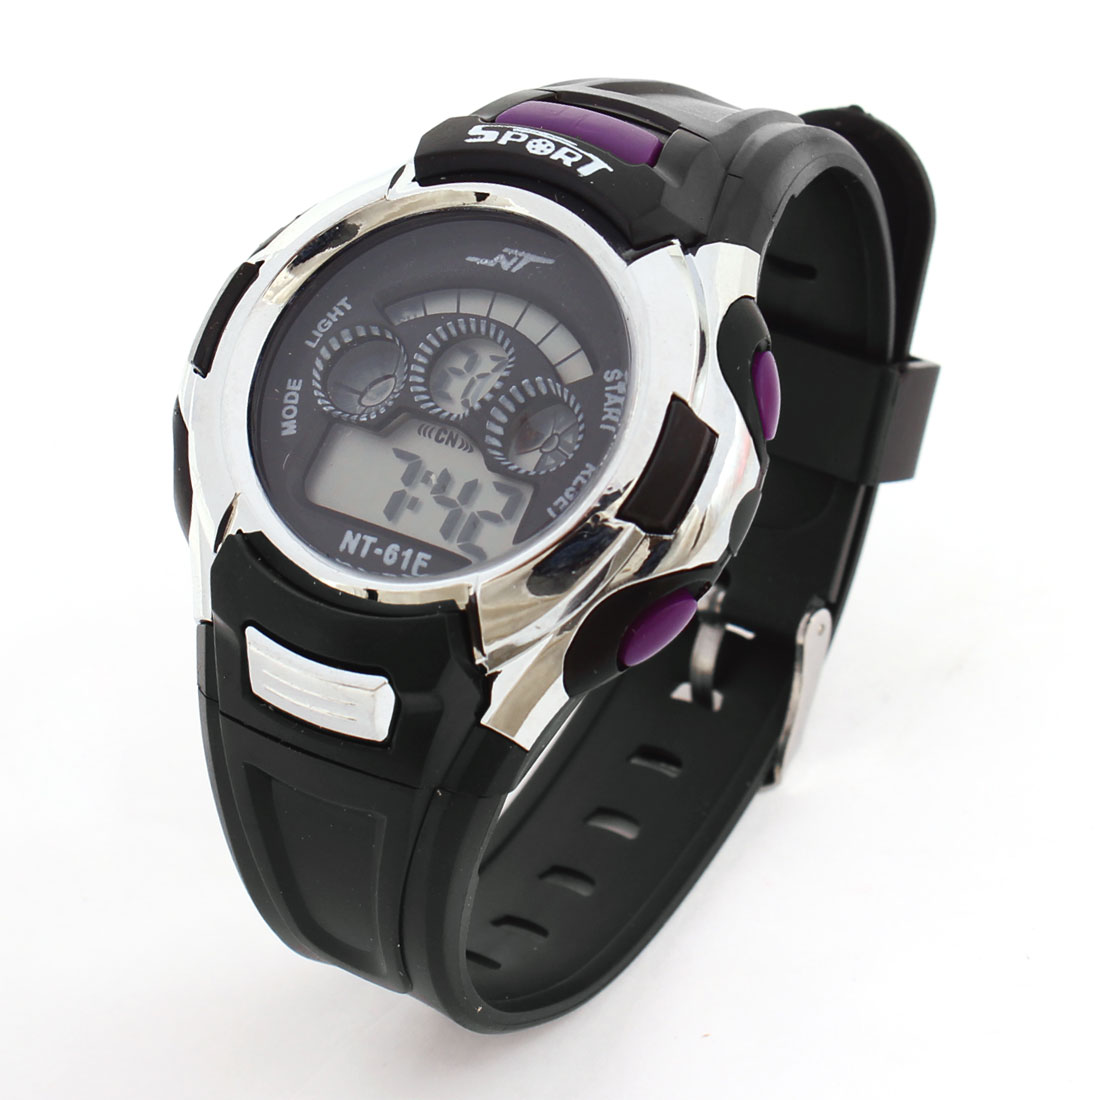 Black Purple Round Dial Adjustable Wristband Sports Digital Wrist Watch for Man